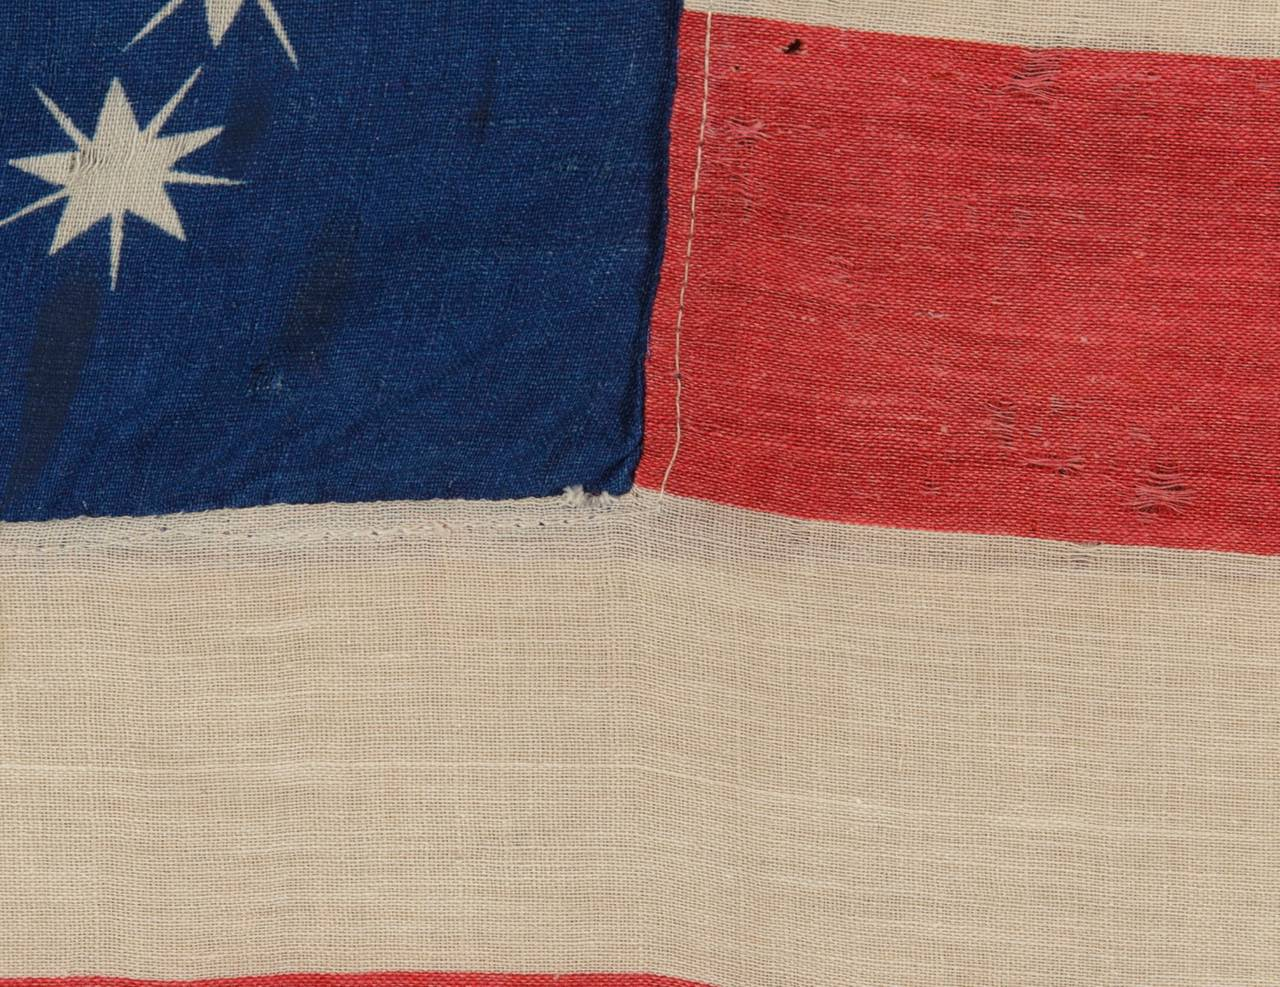 """Antiques American Flag with Ten-Pointed Stars That Spell """"1776-1876"""" 3"""